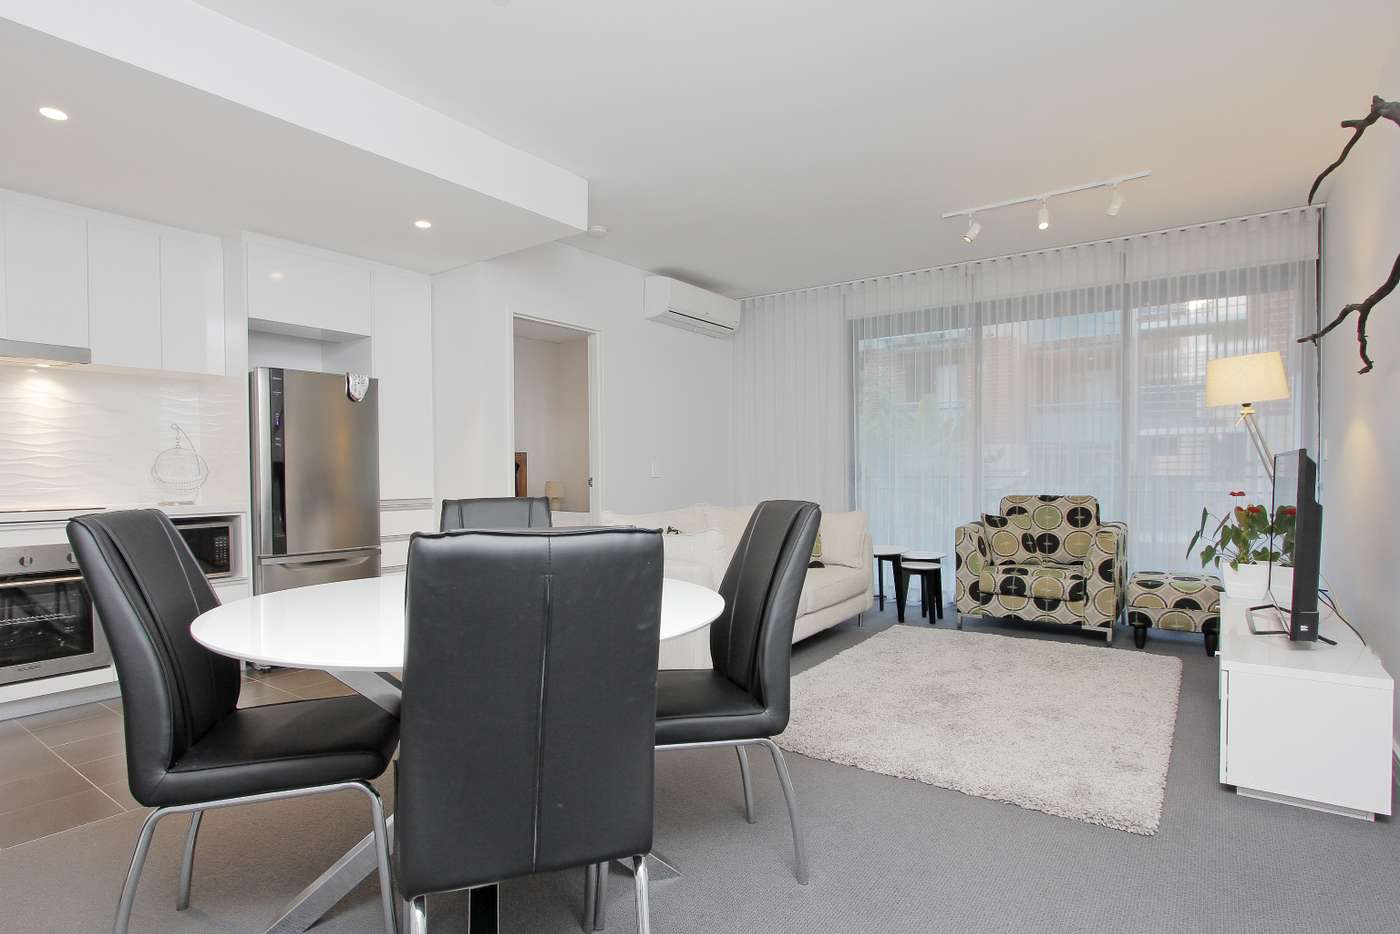 Main view of Homely apartment listing, 16/36 Bronte Street, East Perth WA 6004